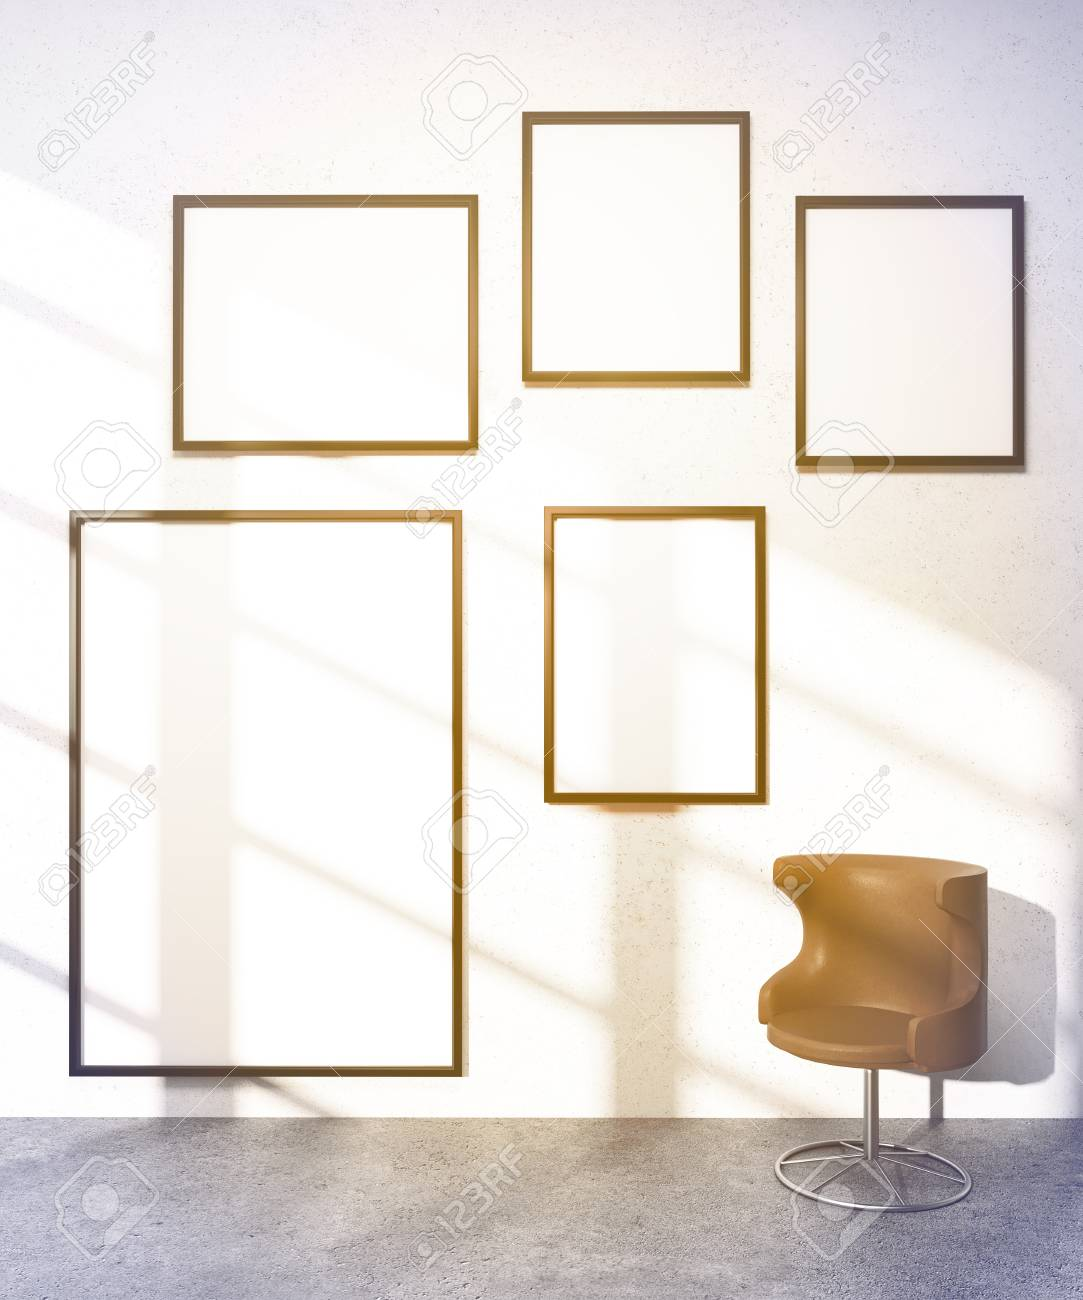 Five Frames On White Wall, Brown Armchair. Concept Of Exhibition ...